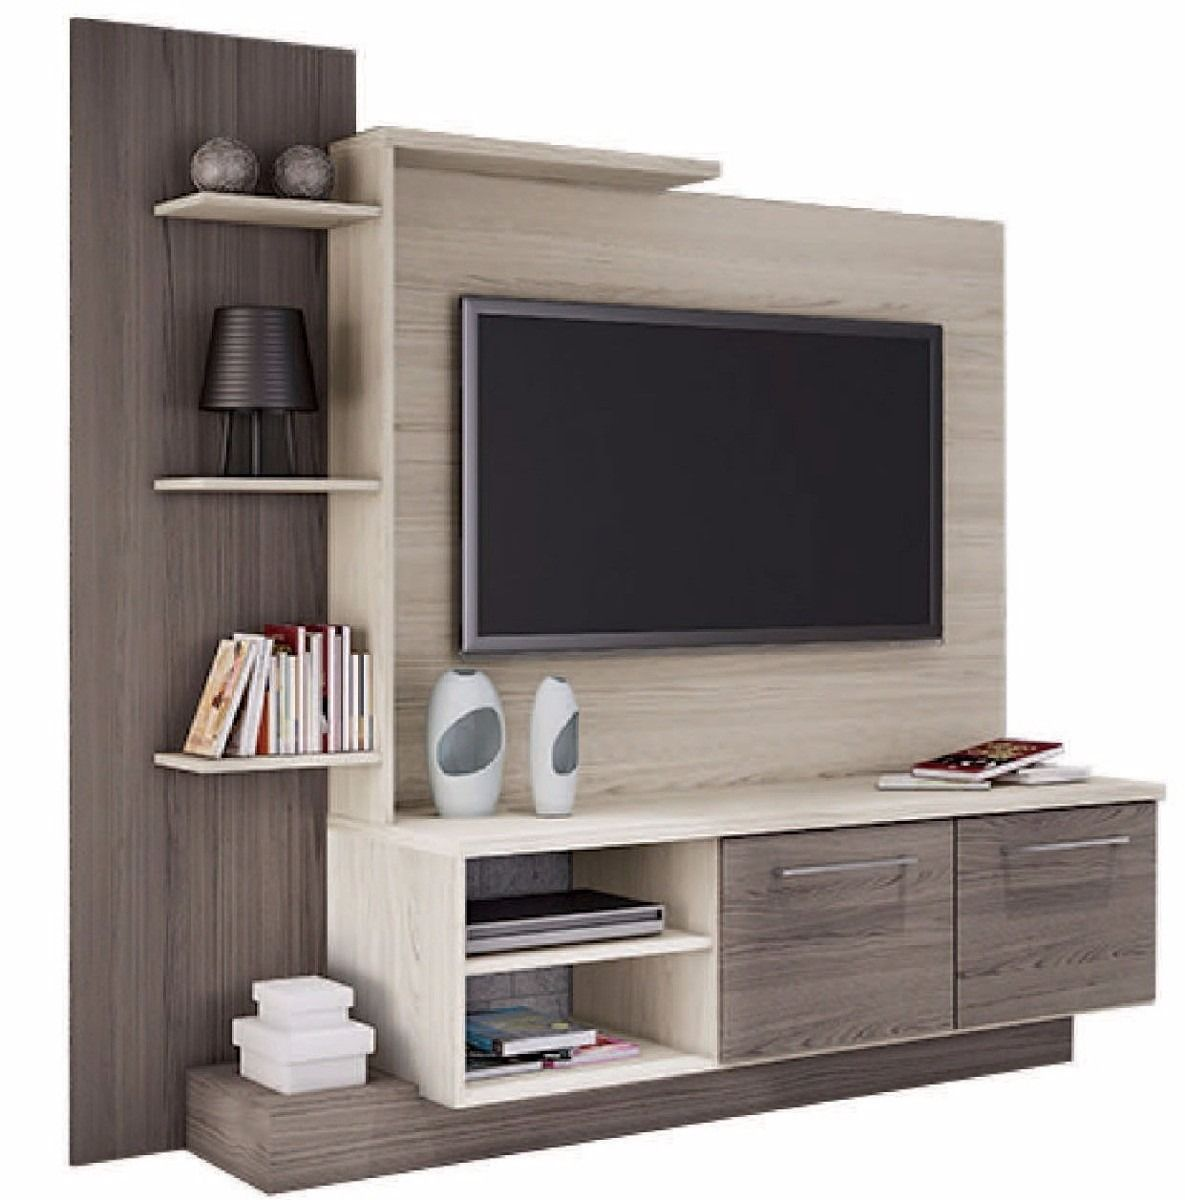 Mesas De Televisor Rack Mesa Tv Led Lcd Mueble De Comedor Modular Home Theater